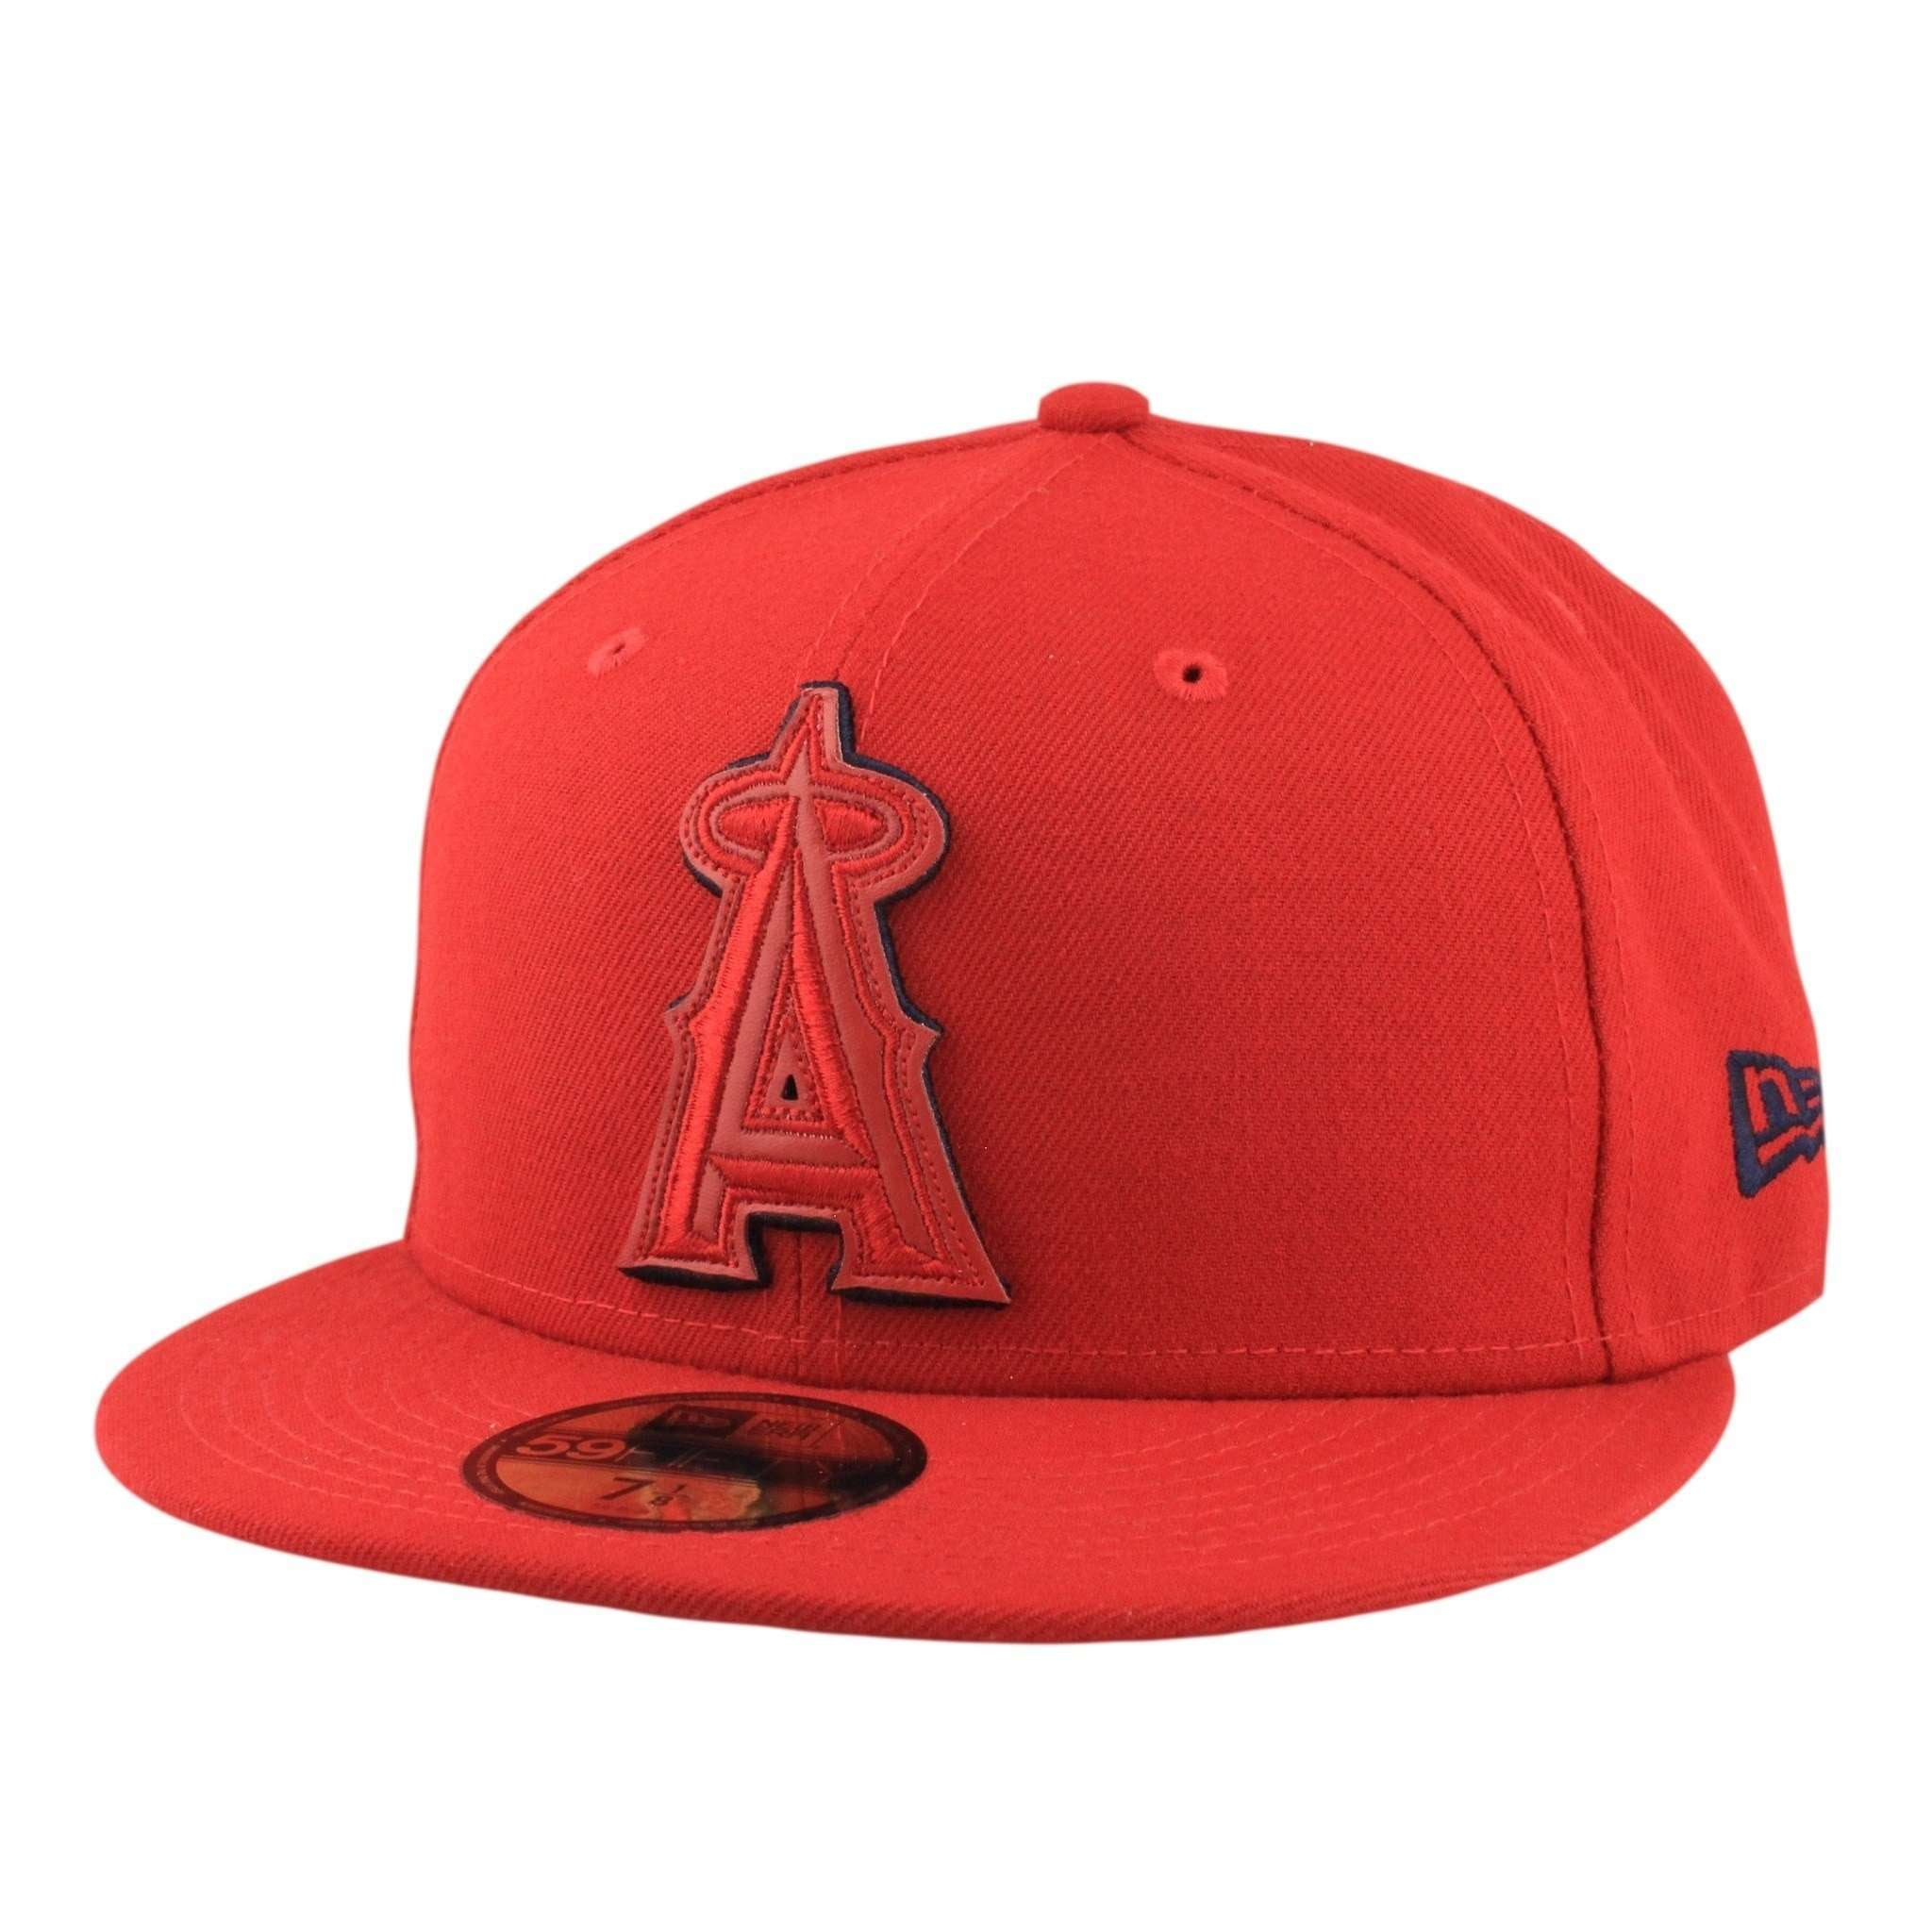 c972291c93a Anaheim Angels Leather Pop Red Red Fitted